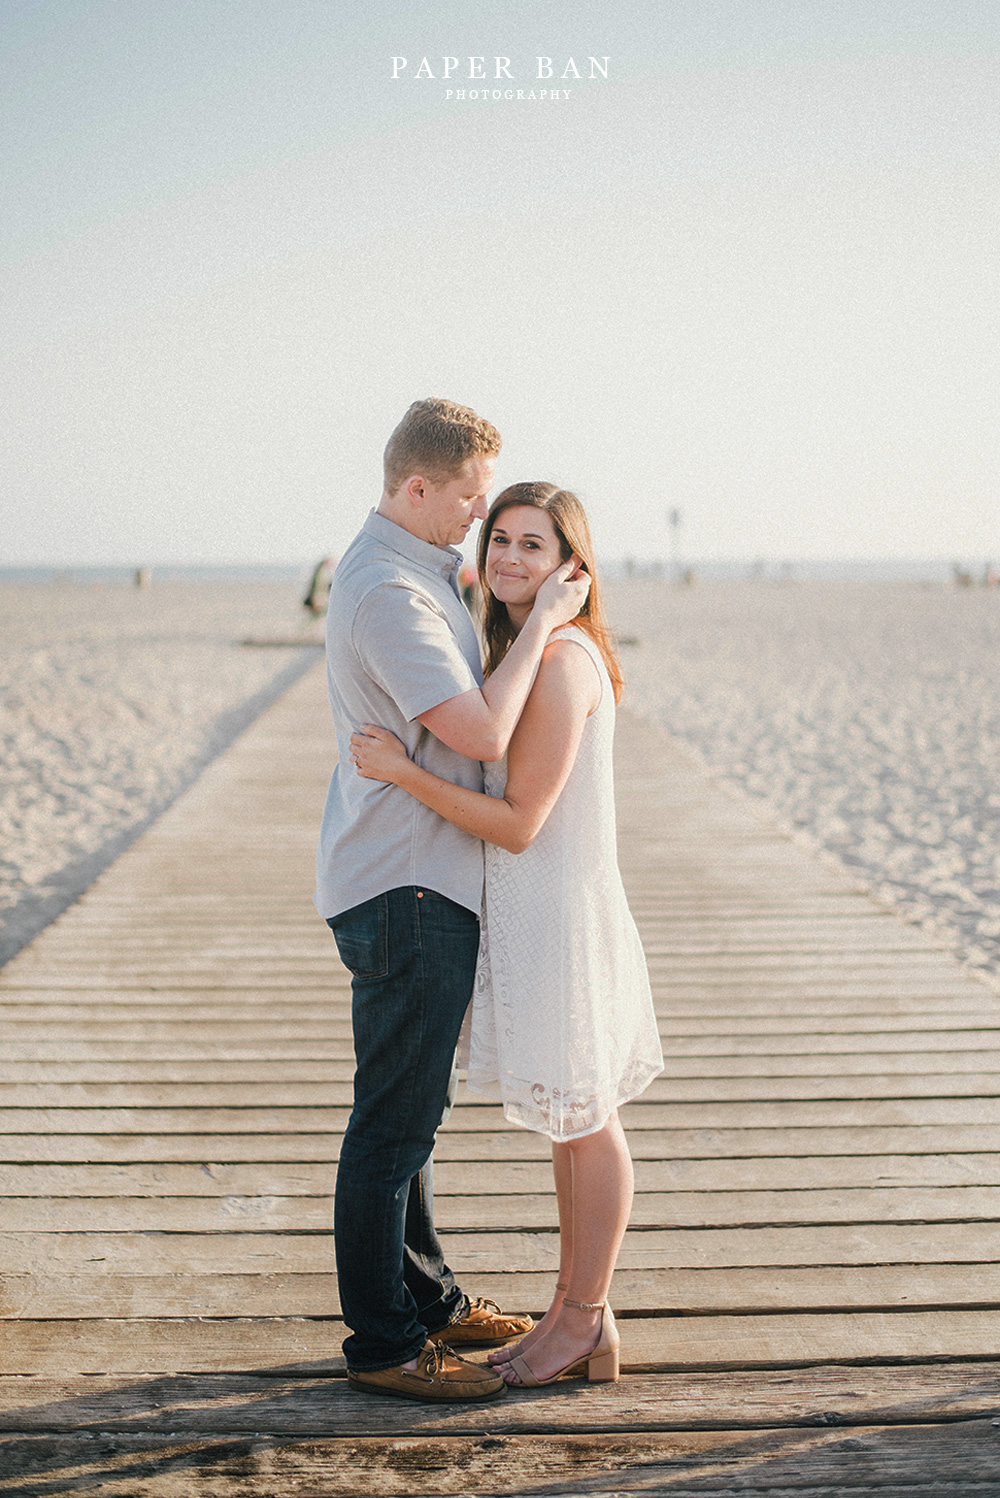 Los Angeles Santa Monica Beach Engagement Portraits